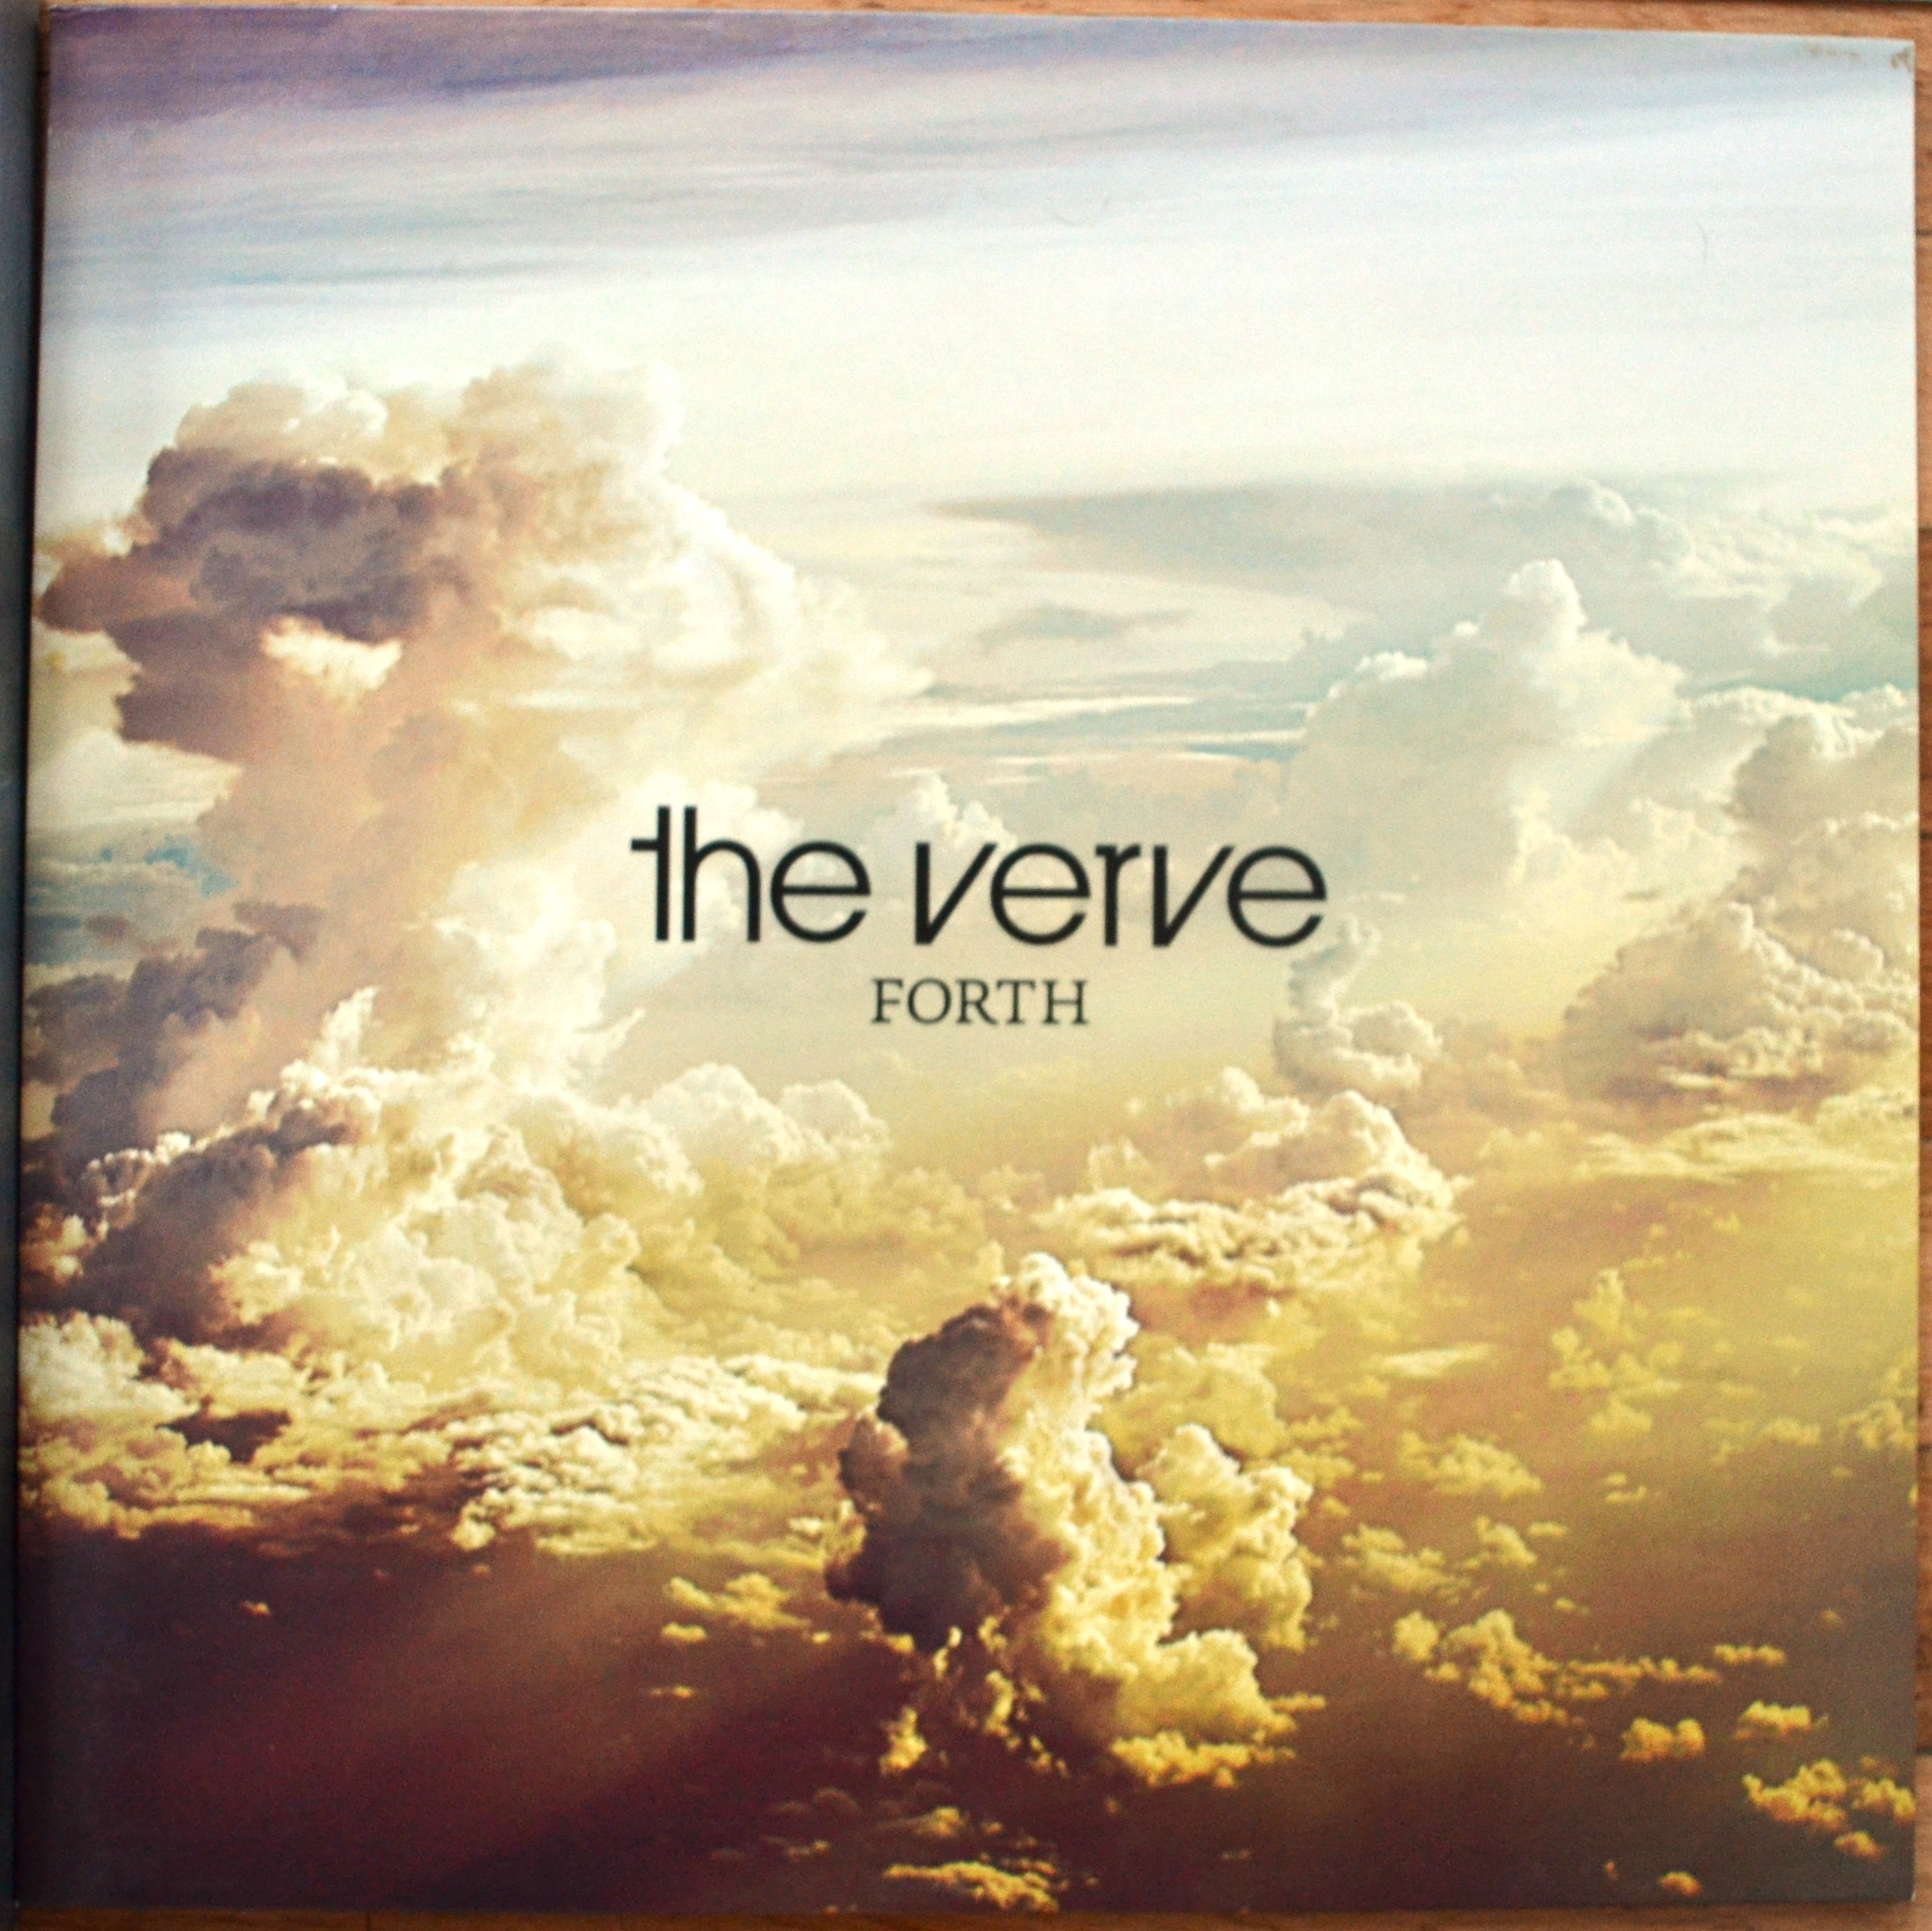 The Verve Forth Deluxe Box Set On Storenvy